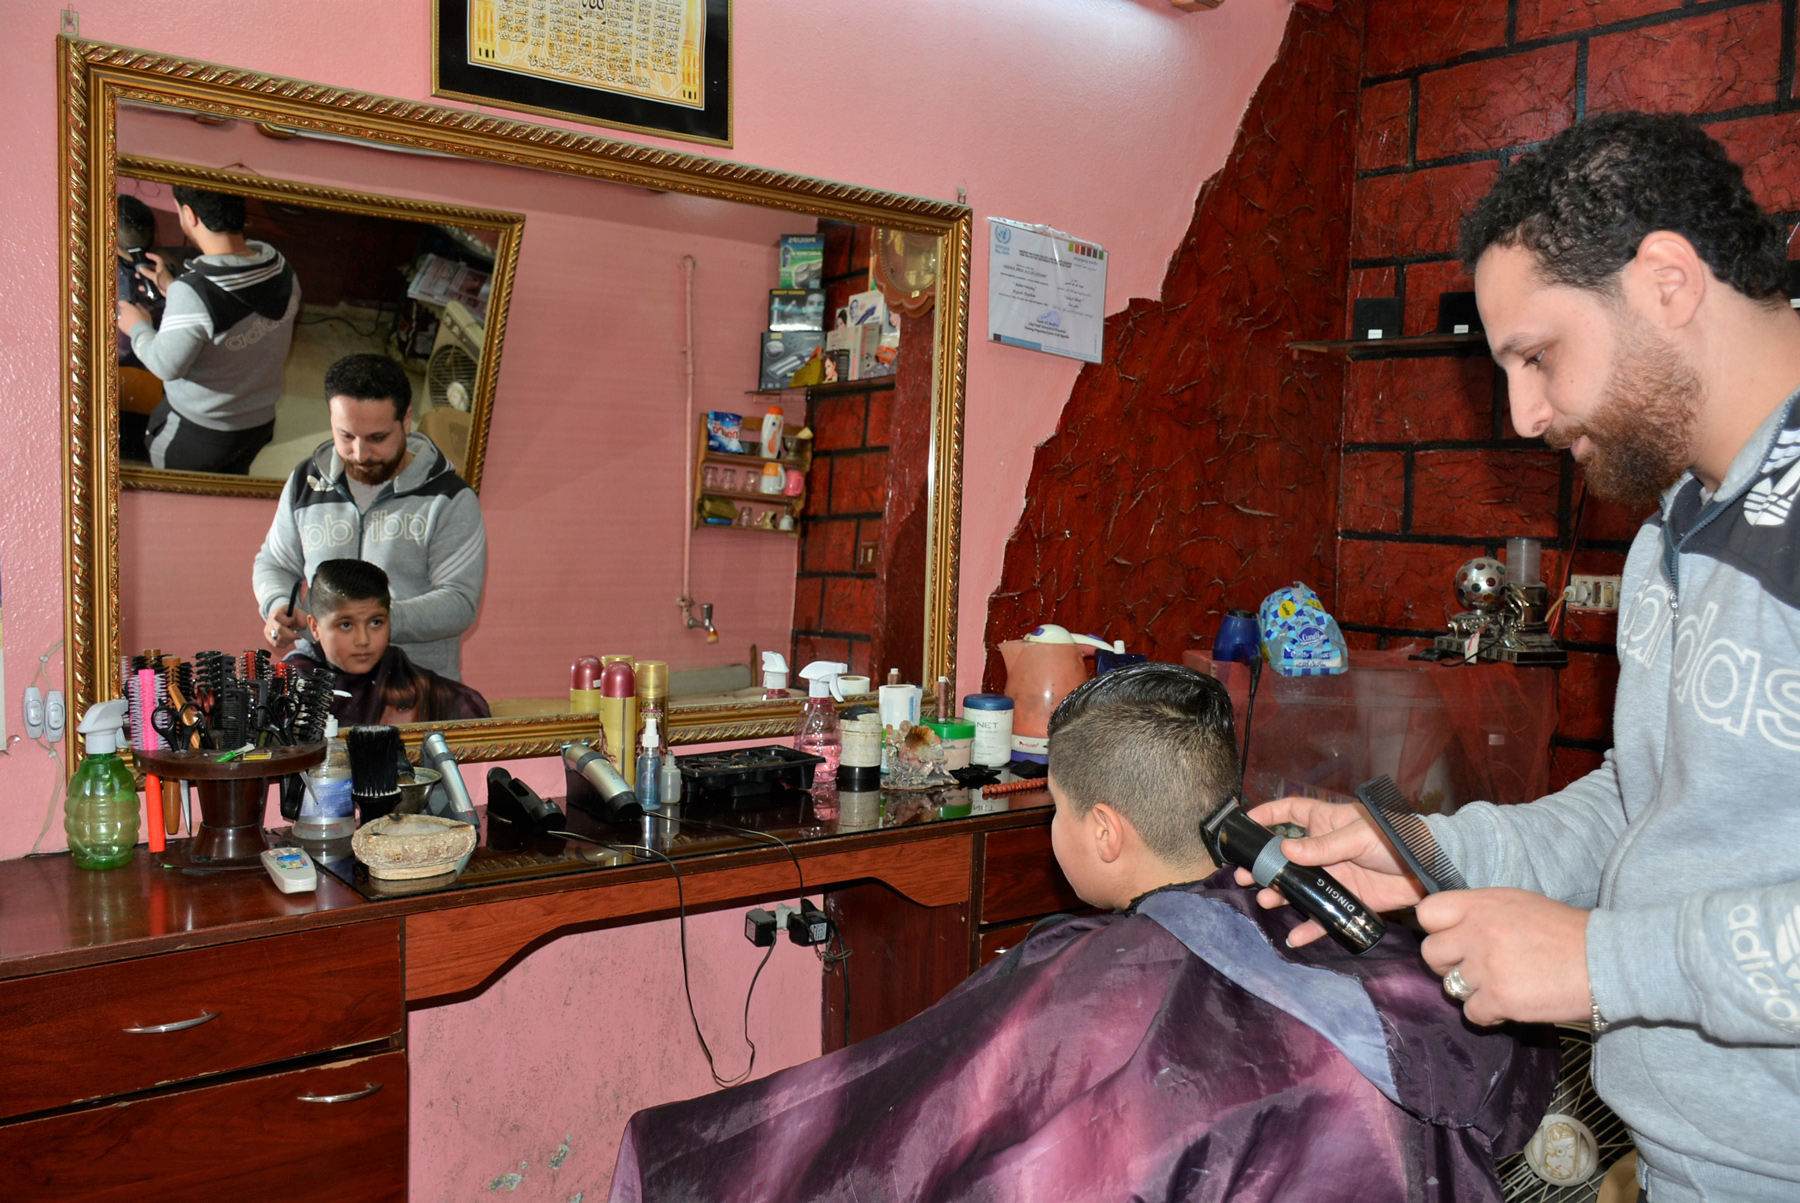 Obeida Shaabi opened up his own hairdressing salon after completing an UNRWA short course. © 2018 UNRWA Photo by Fernande van Tets